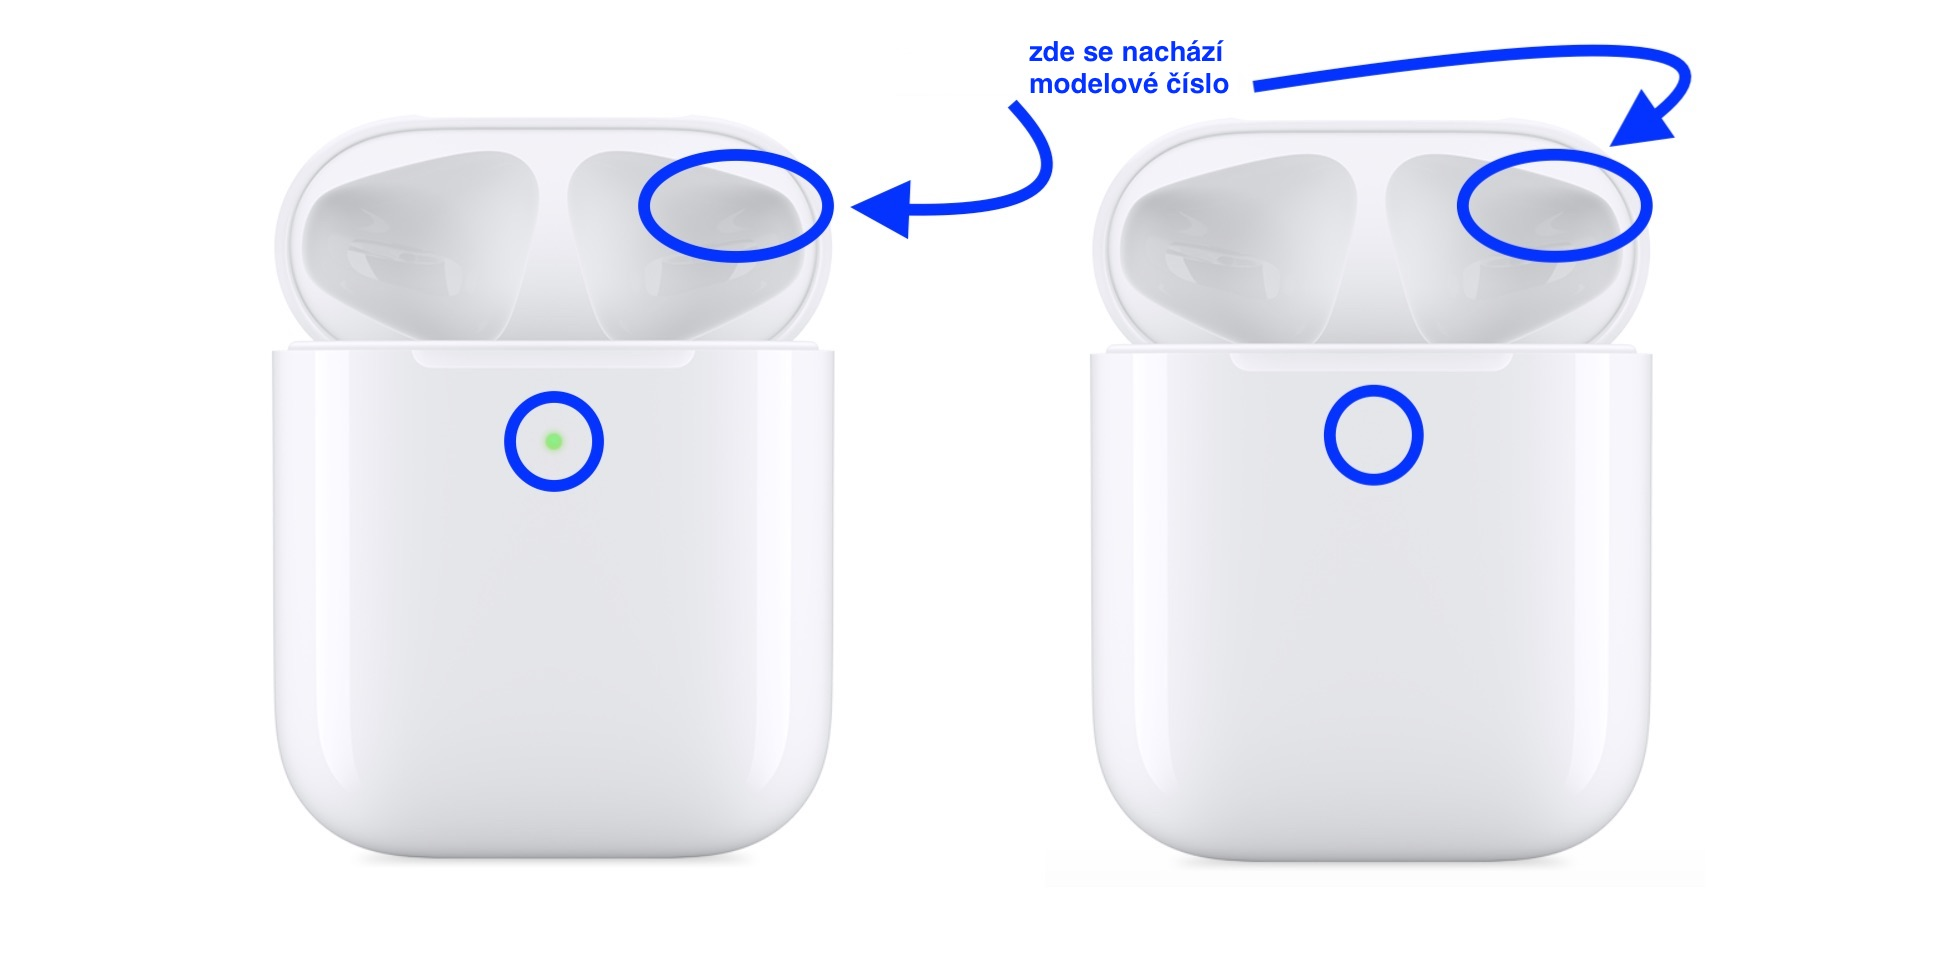 airpods_rozdily_1_2_2